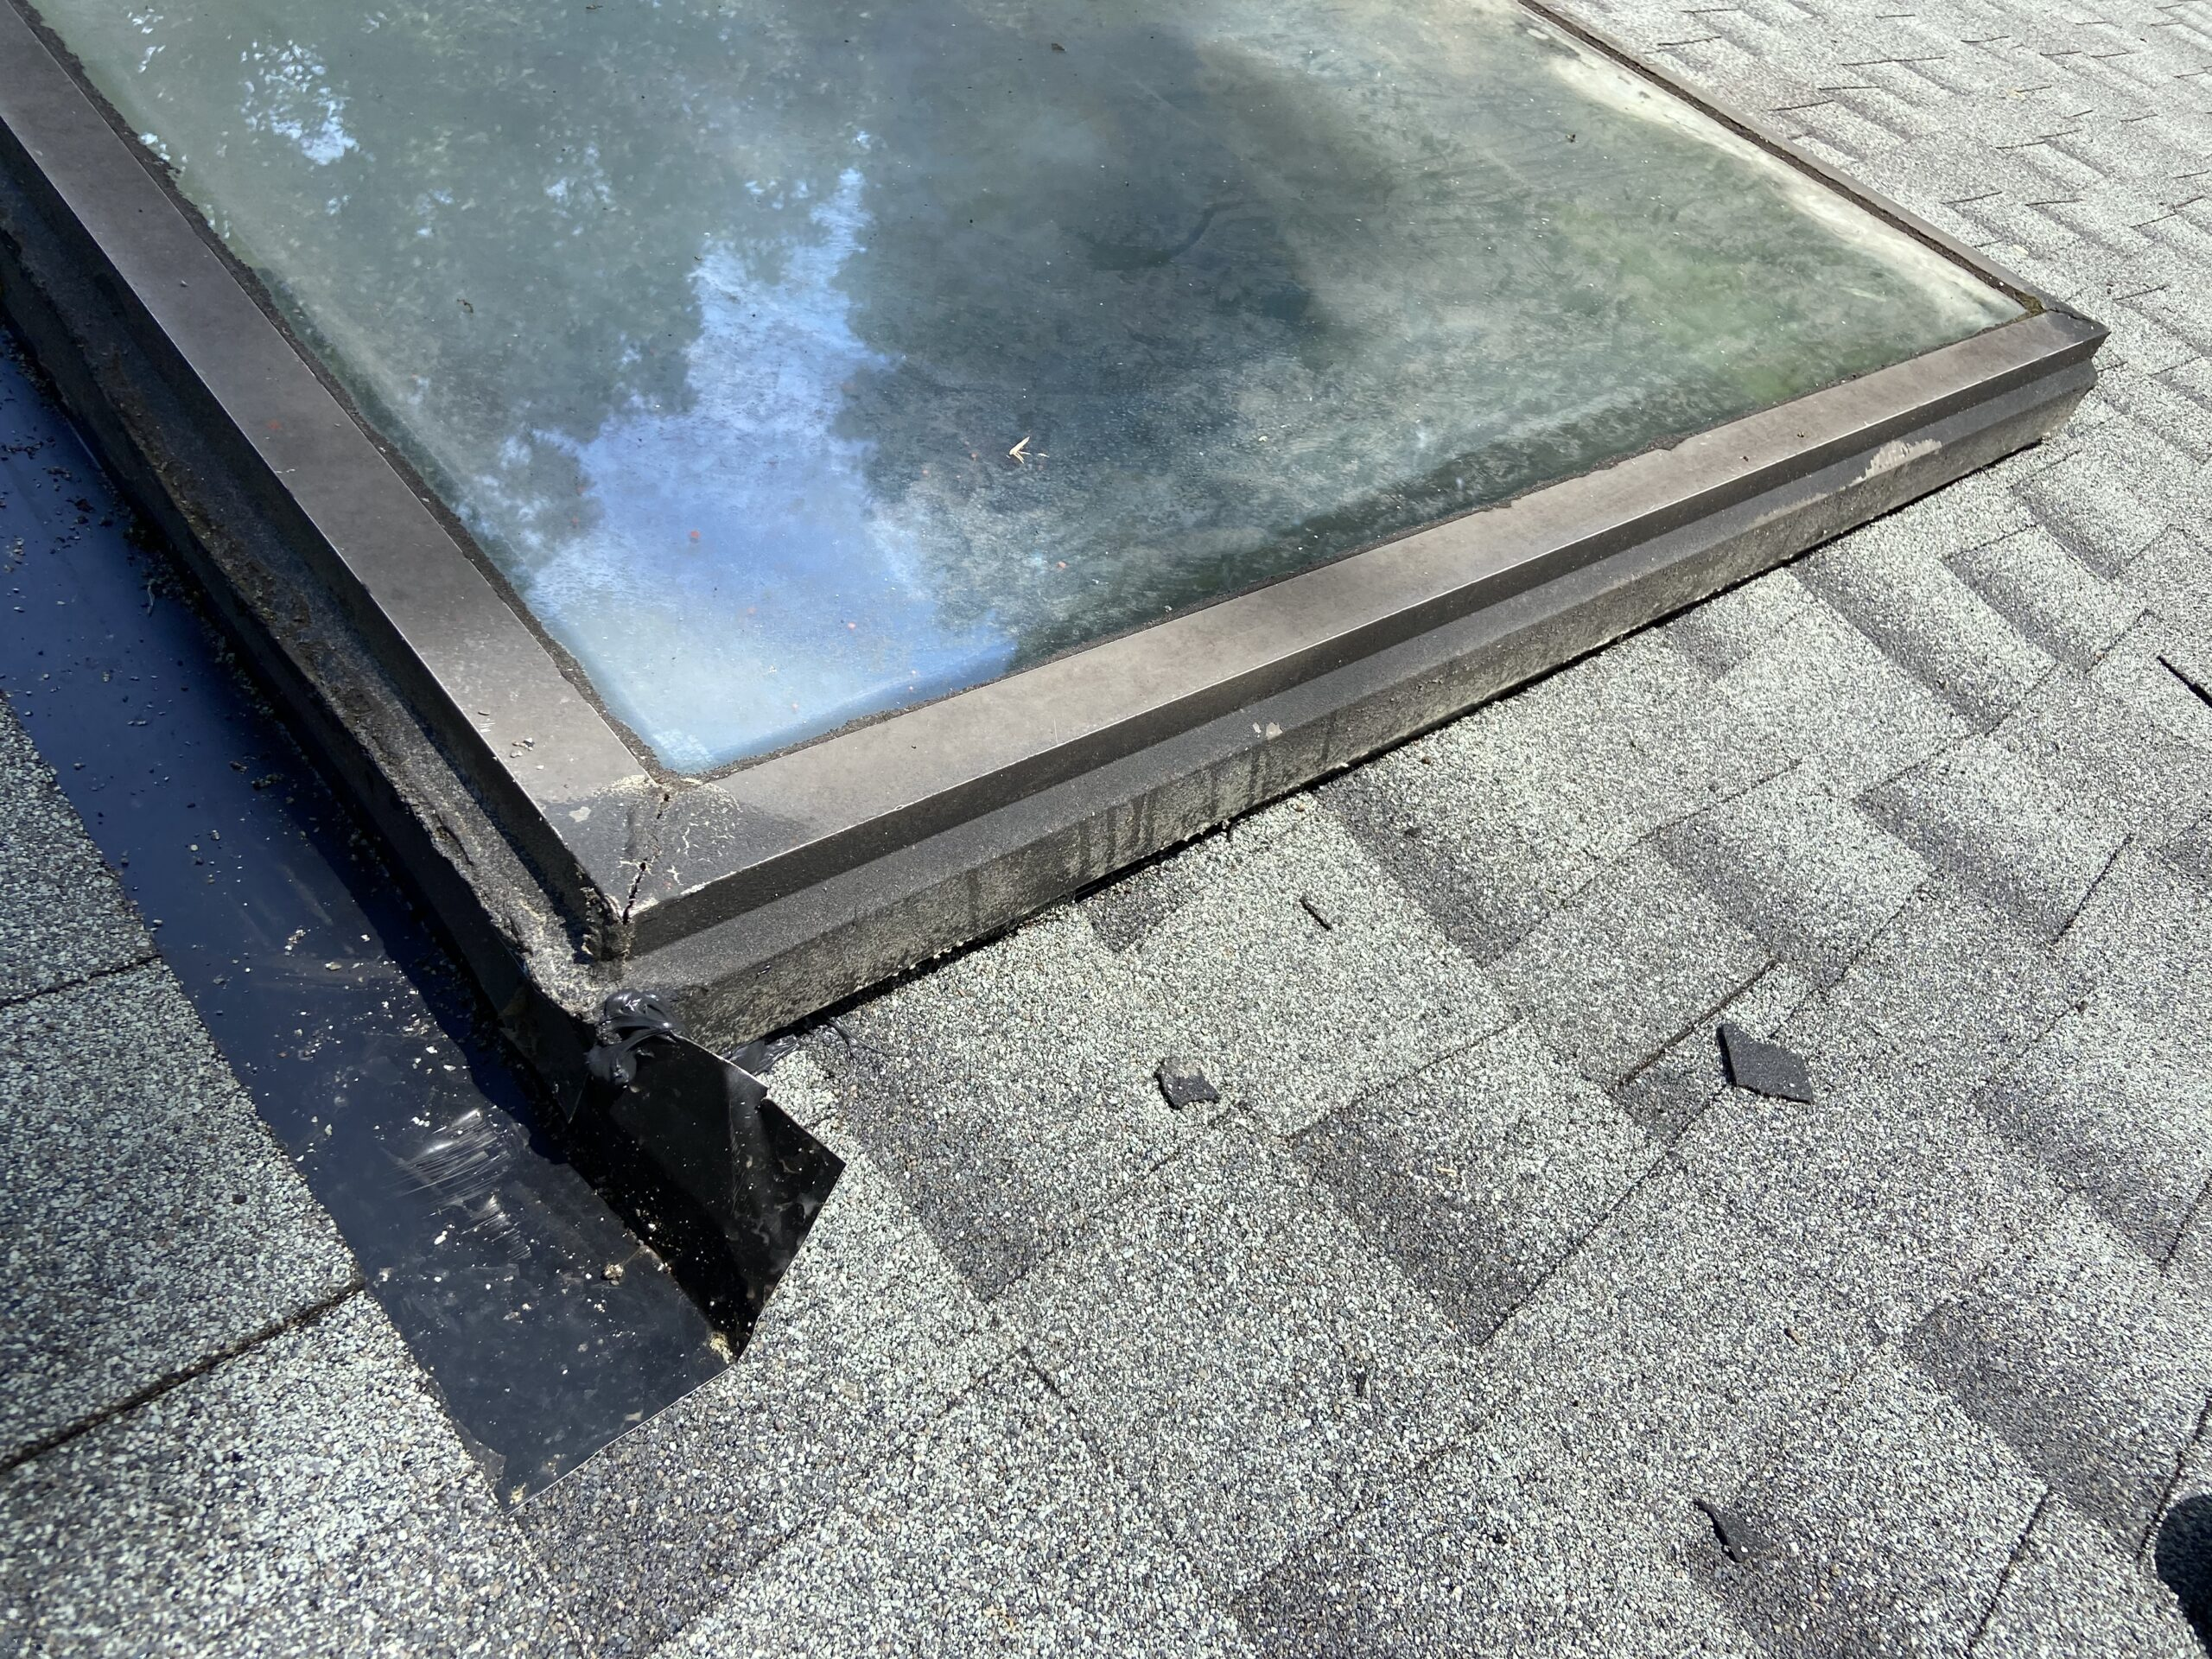 This is also an after image of the skylight post construction